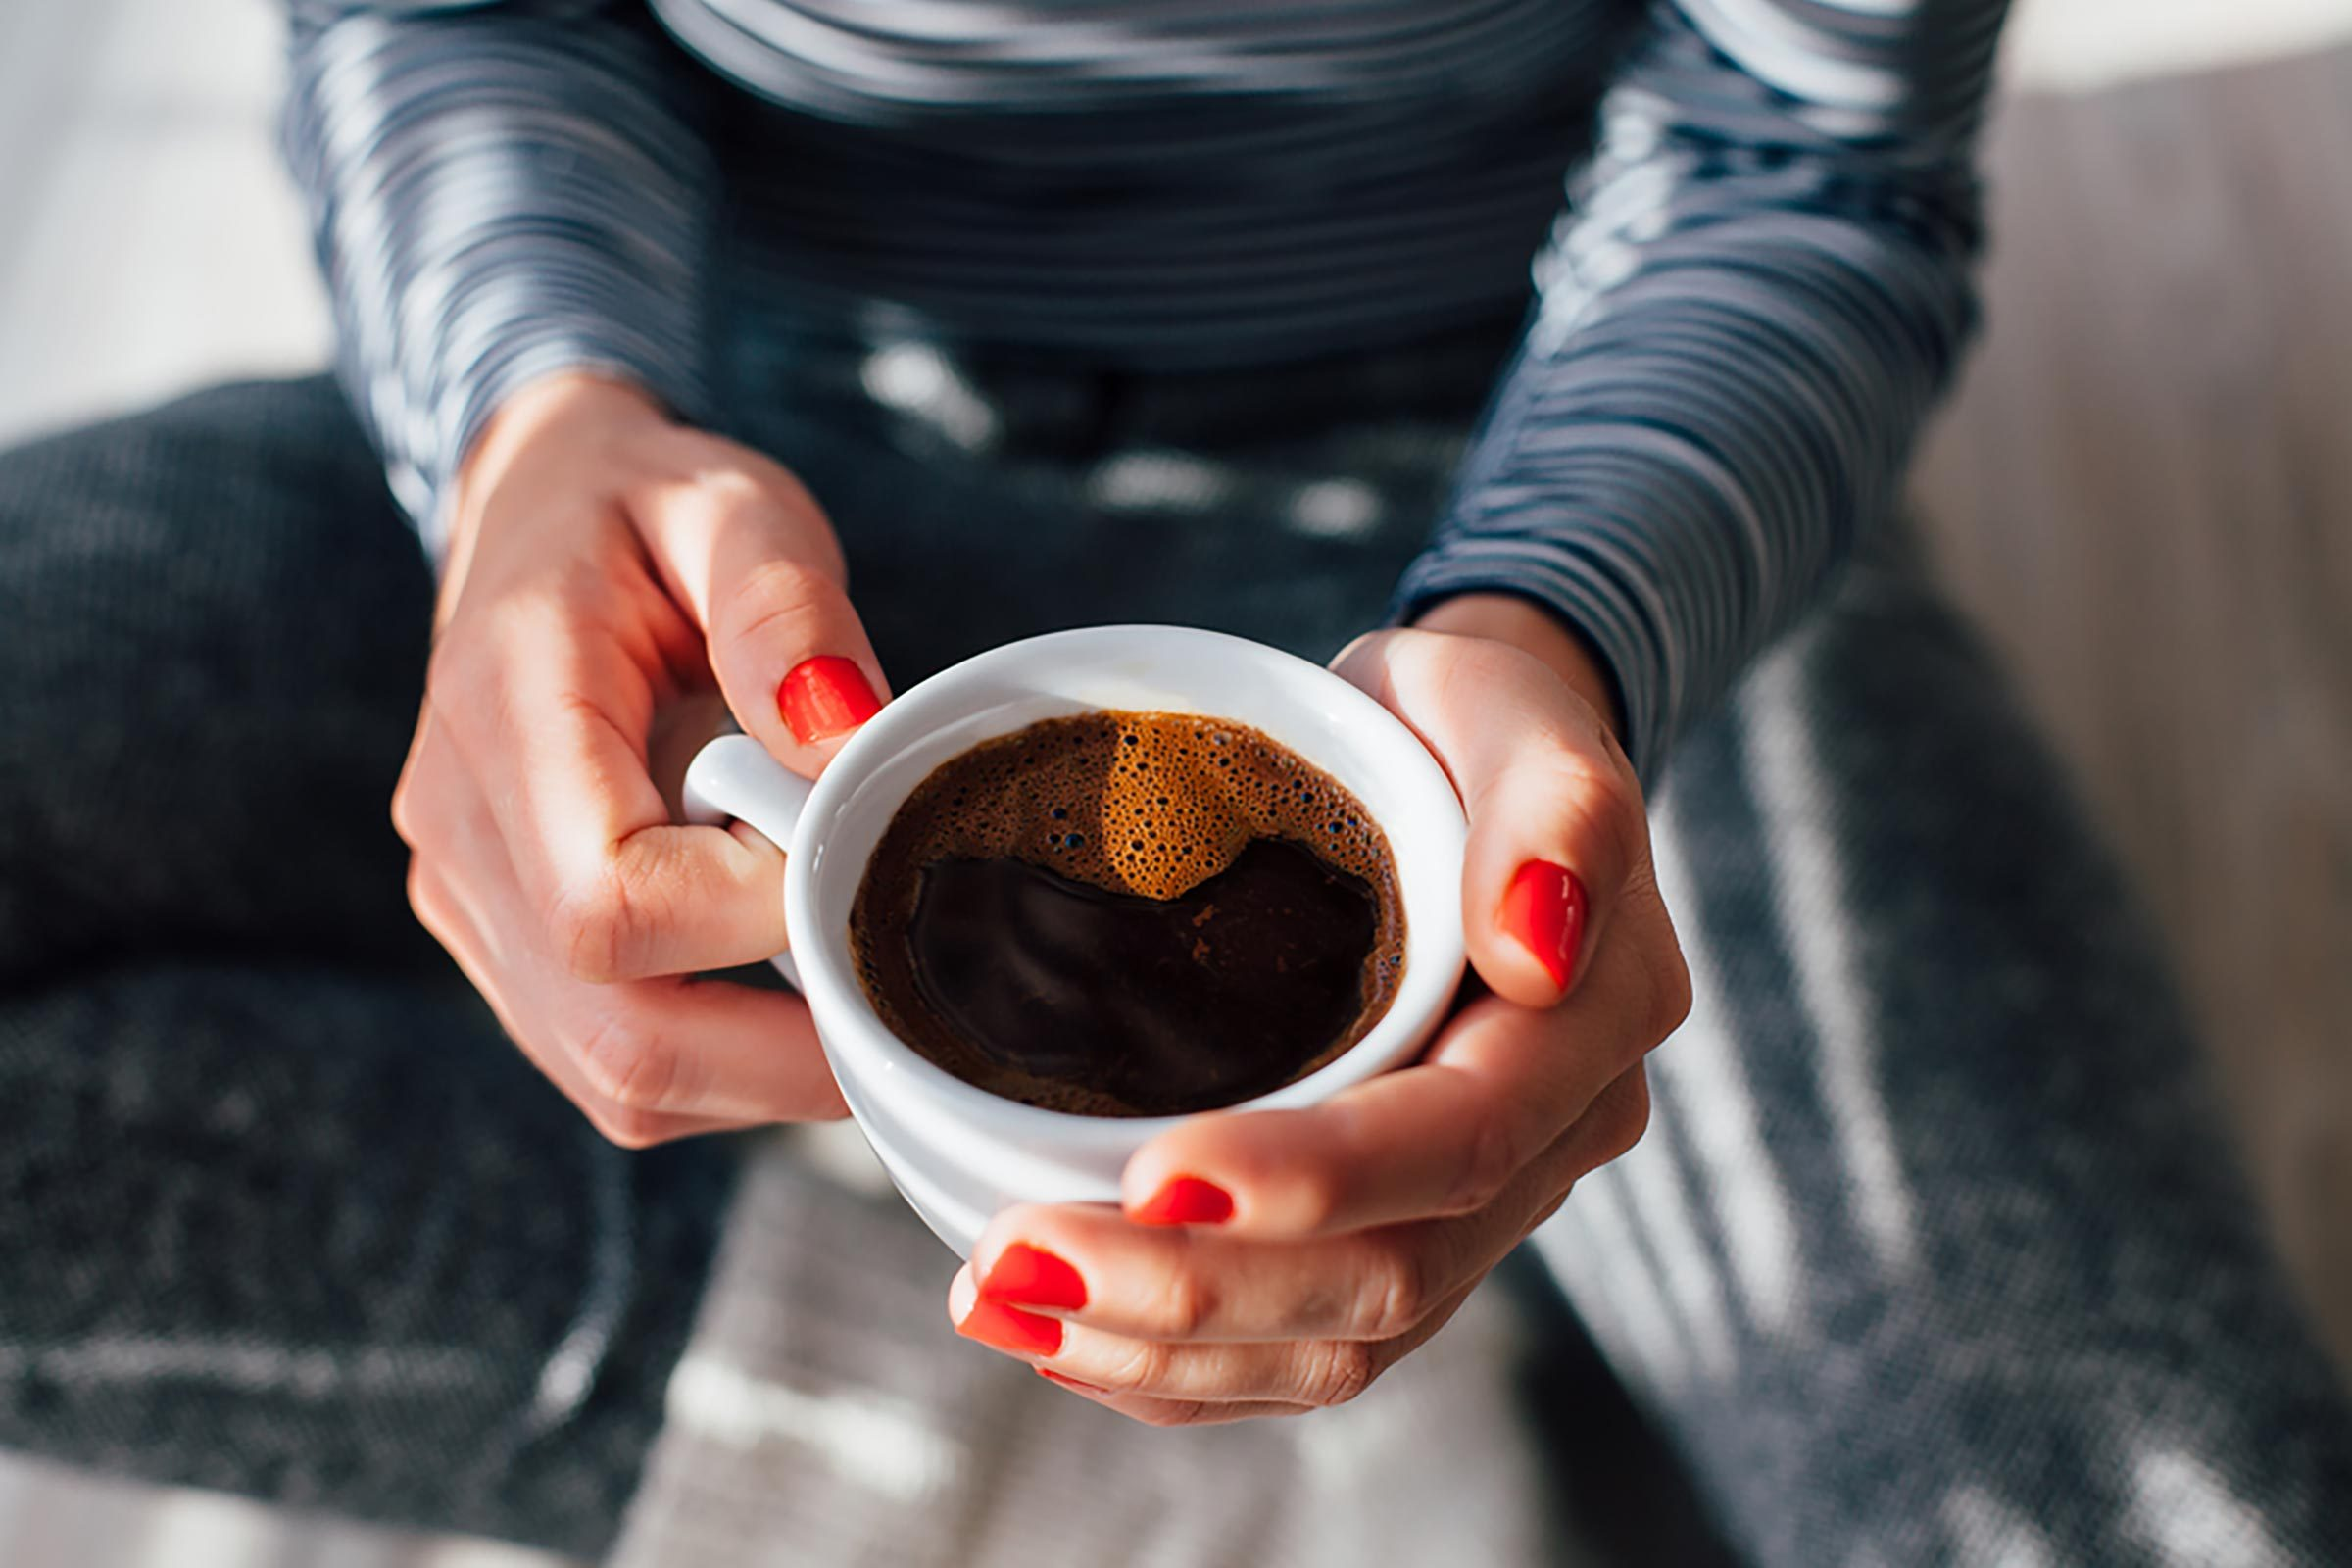 woman's hands, holding cup of coffee